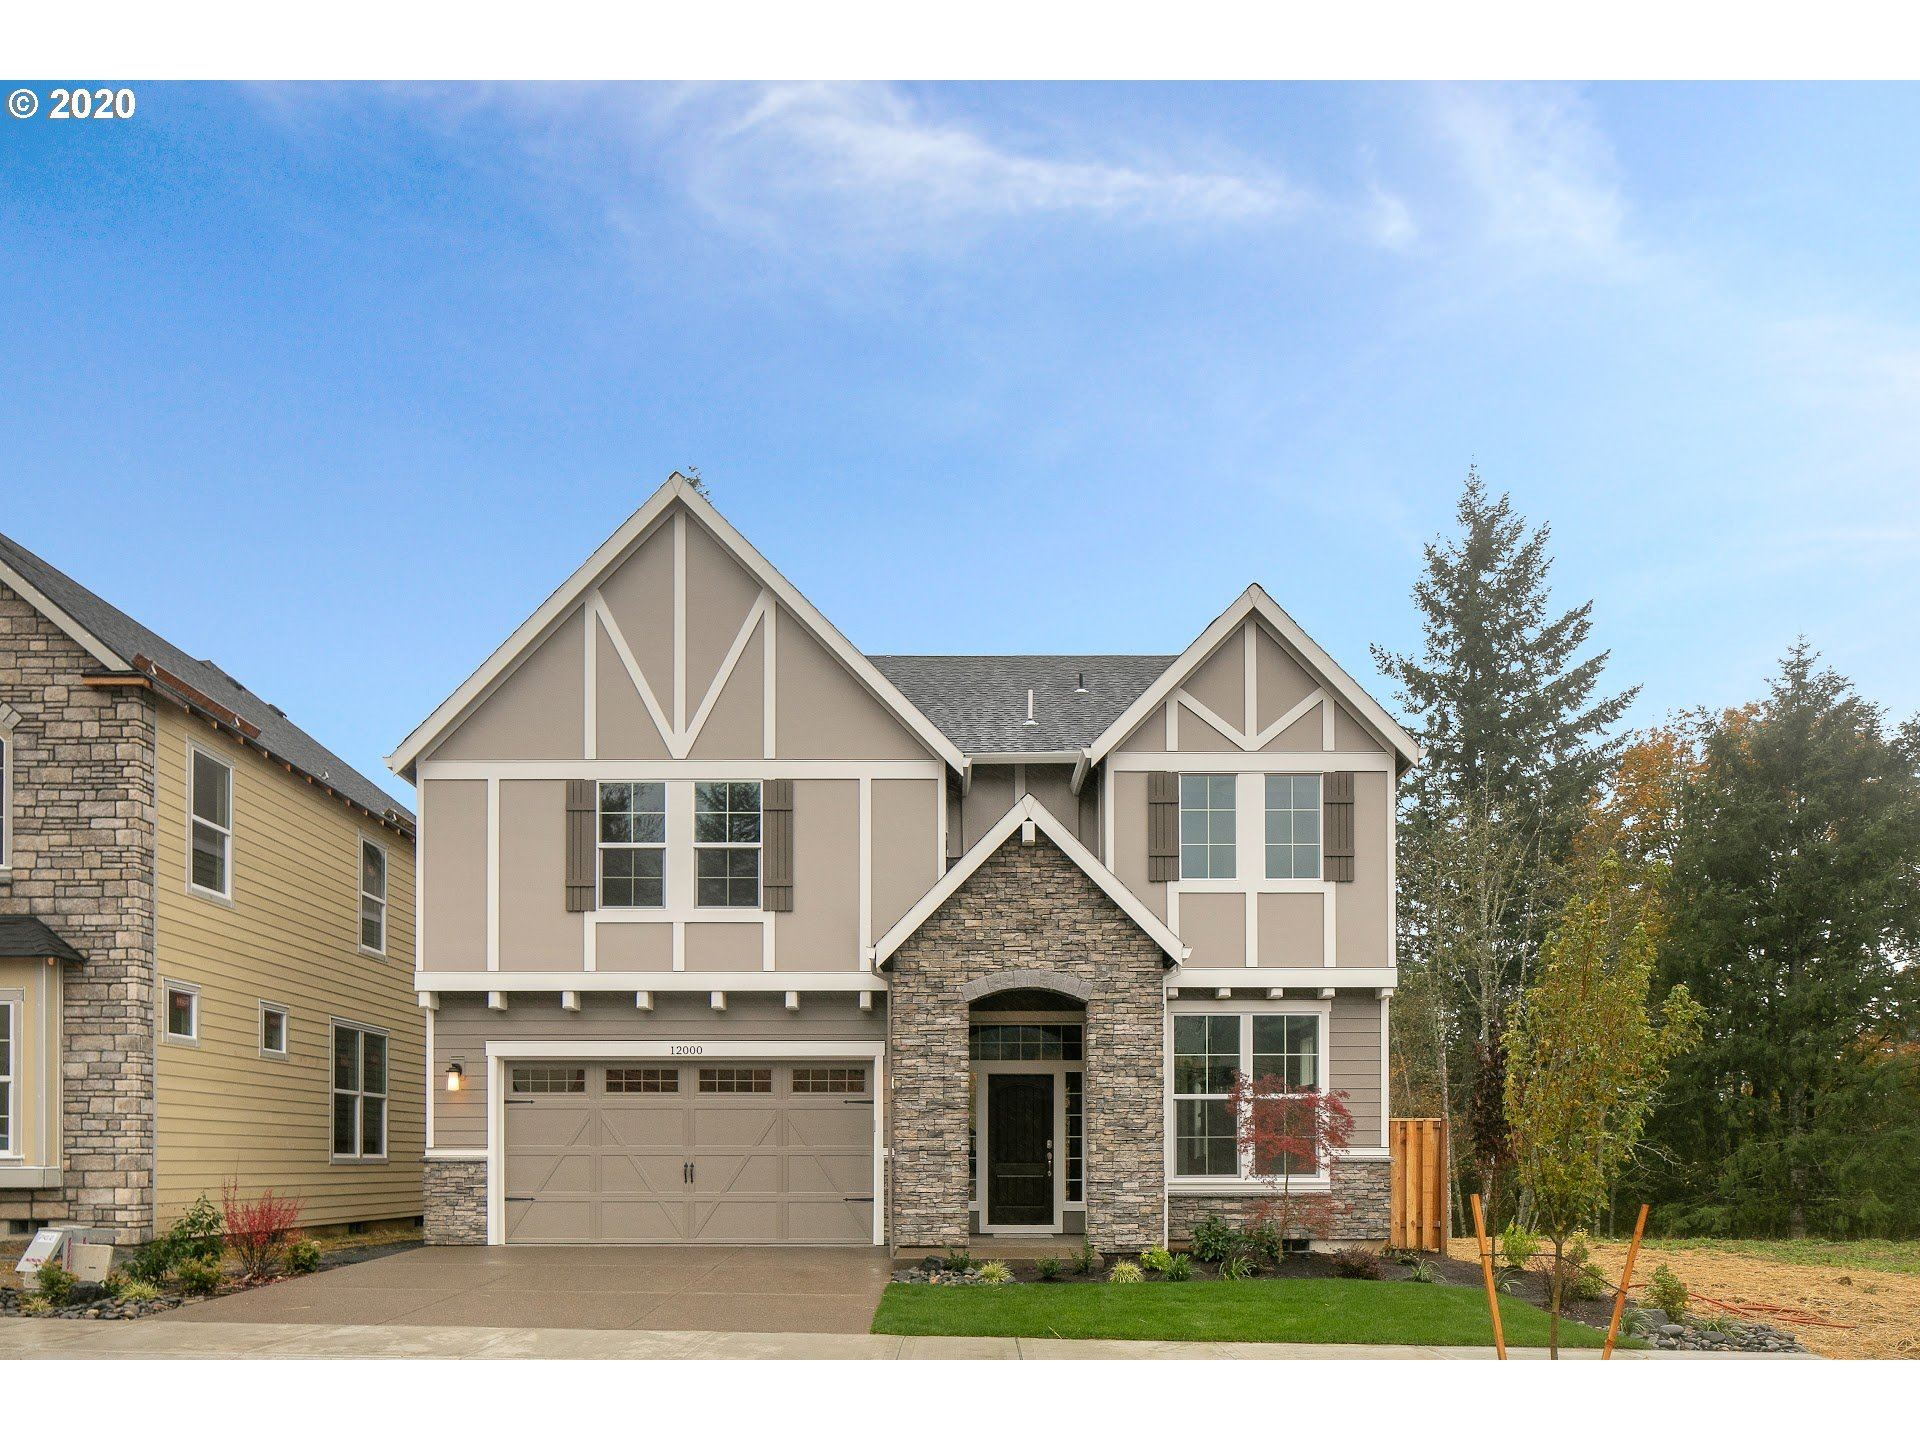 12000 NW Schall ST, Portland, OR 97229 - MLS#: 19402333